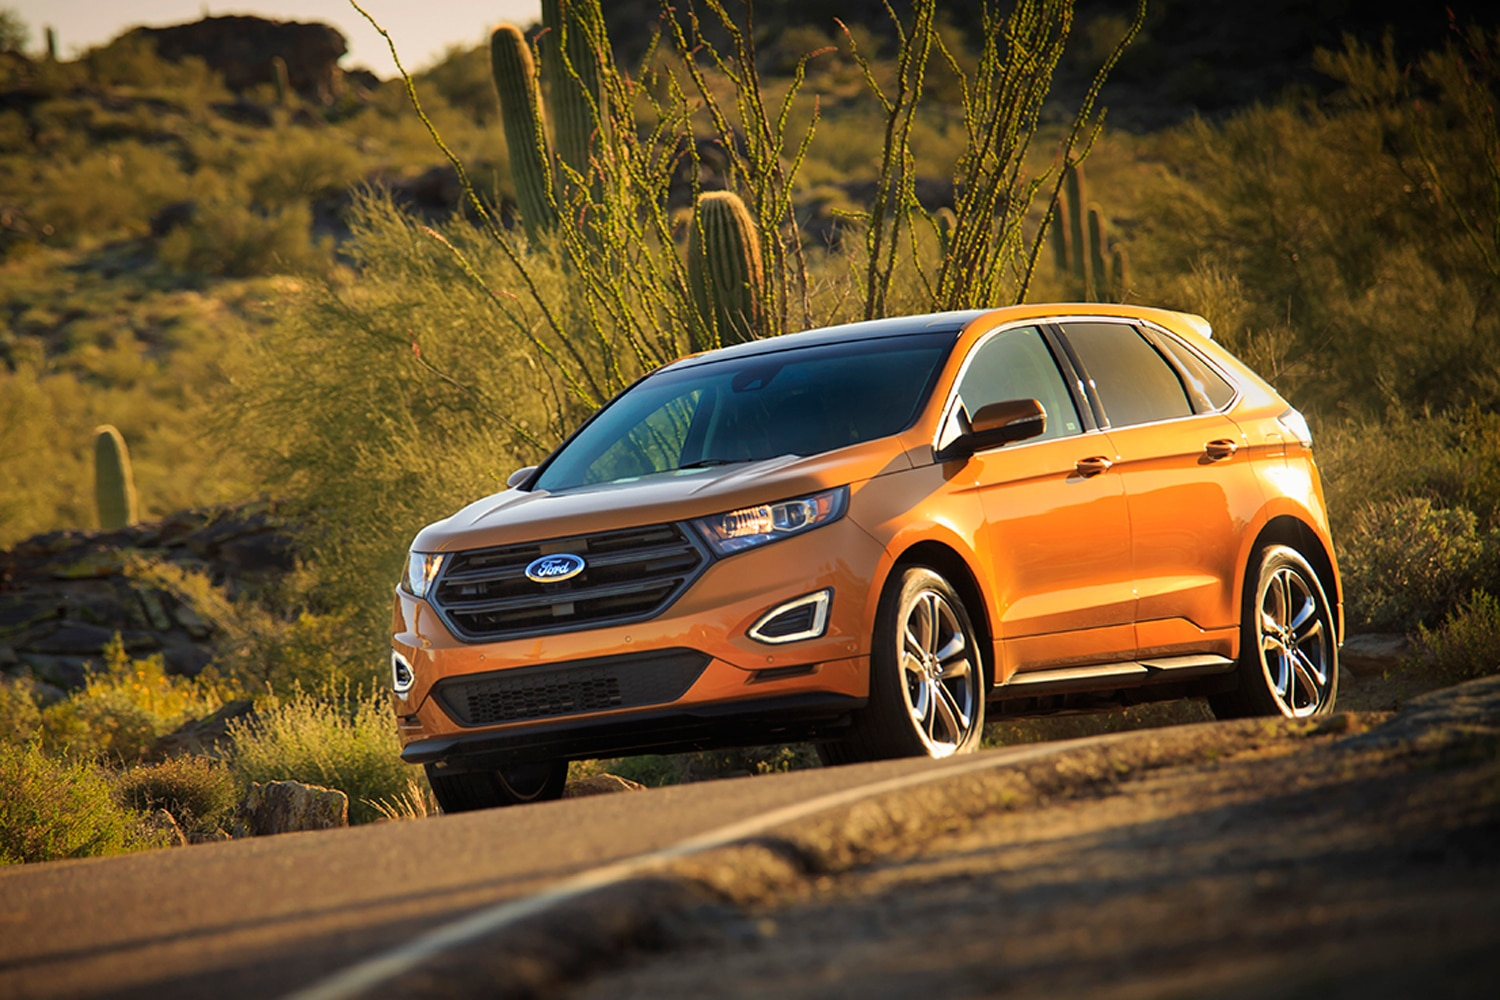 The Edge Has Been Added To One Fords European Lineup No Doubt With A Manual Option But Then Europe Will Get Asel Option As Well